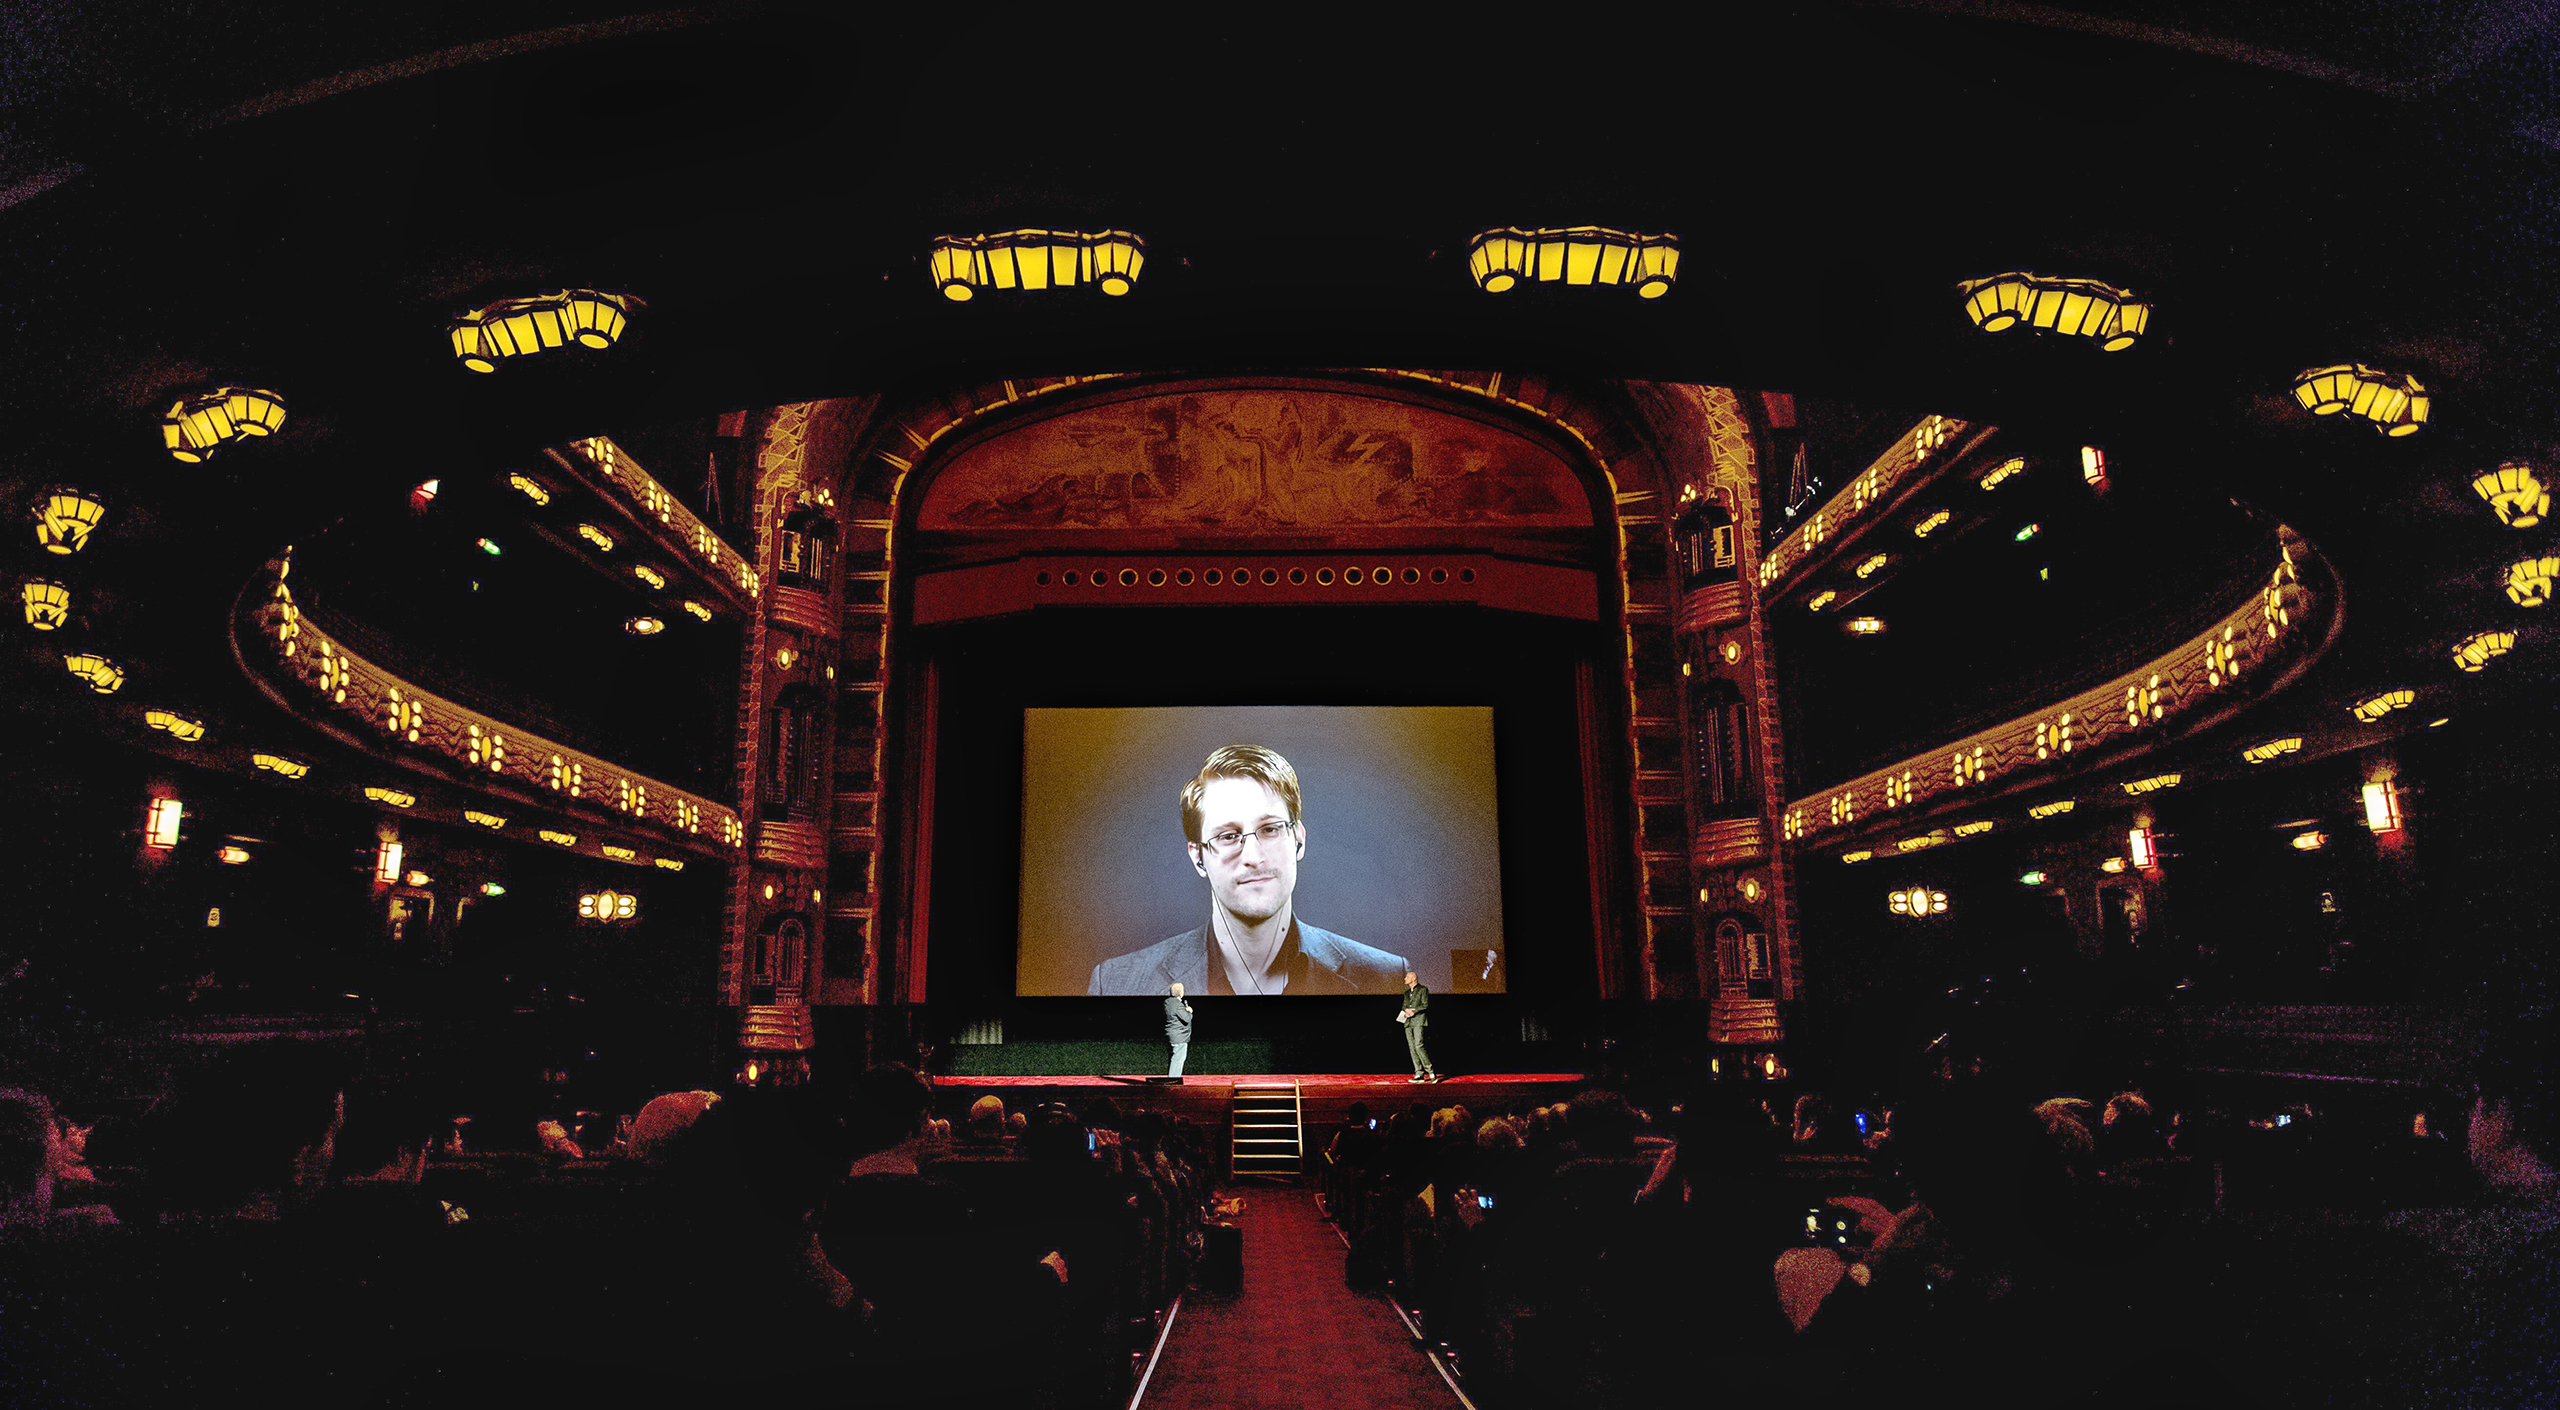 Snowden can still appear outside Russia—as at this Amsterdam film festival—but only by video link